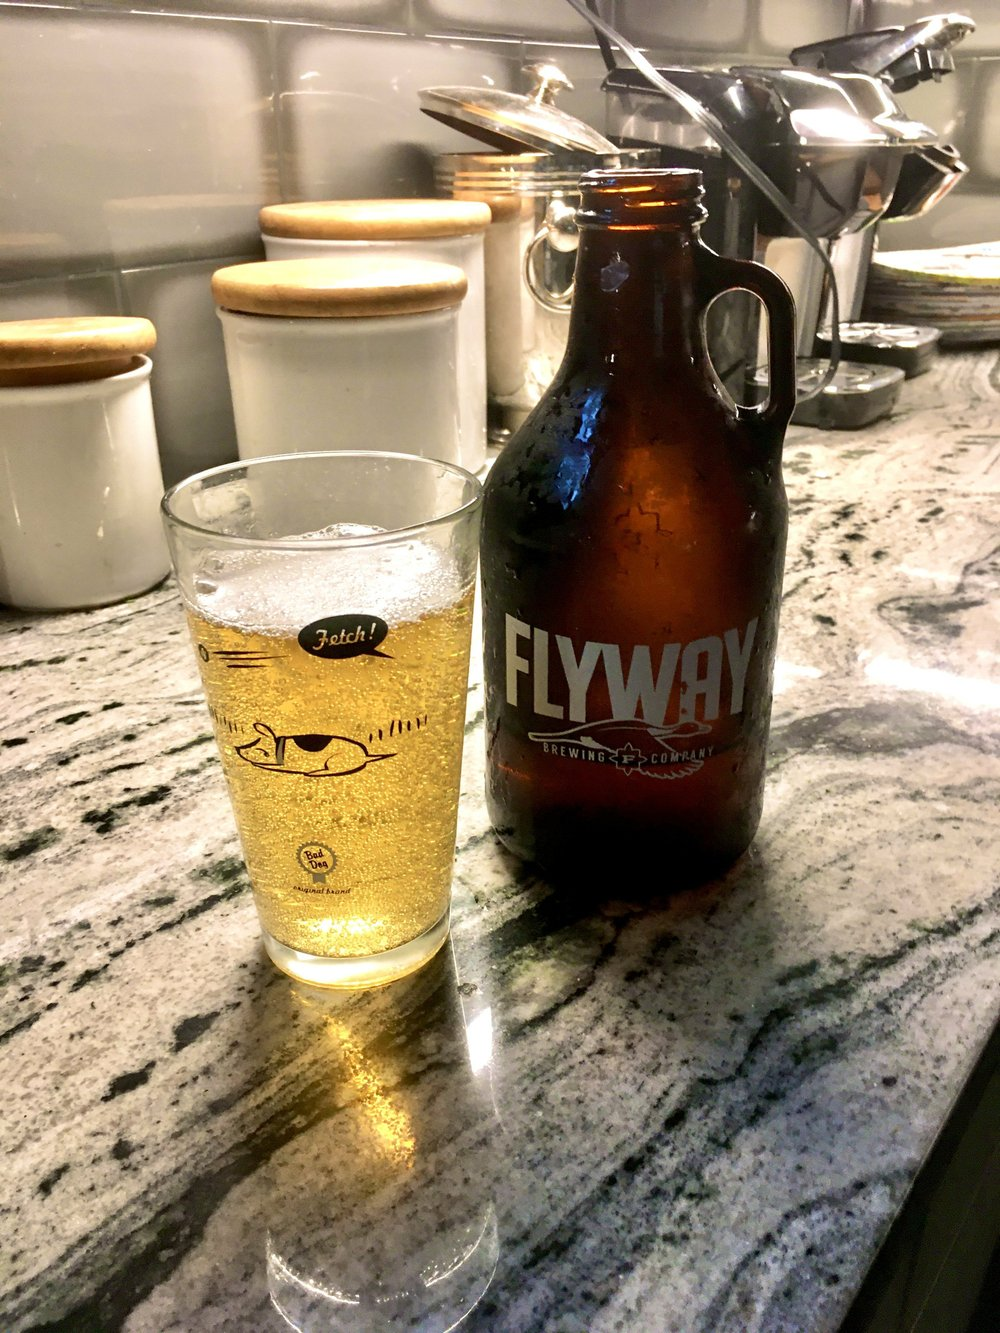 To wash down the meal, a growler filled with Pintail IPA was in order. (Arkansas Democrat-Gazette/Philip Martin)